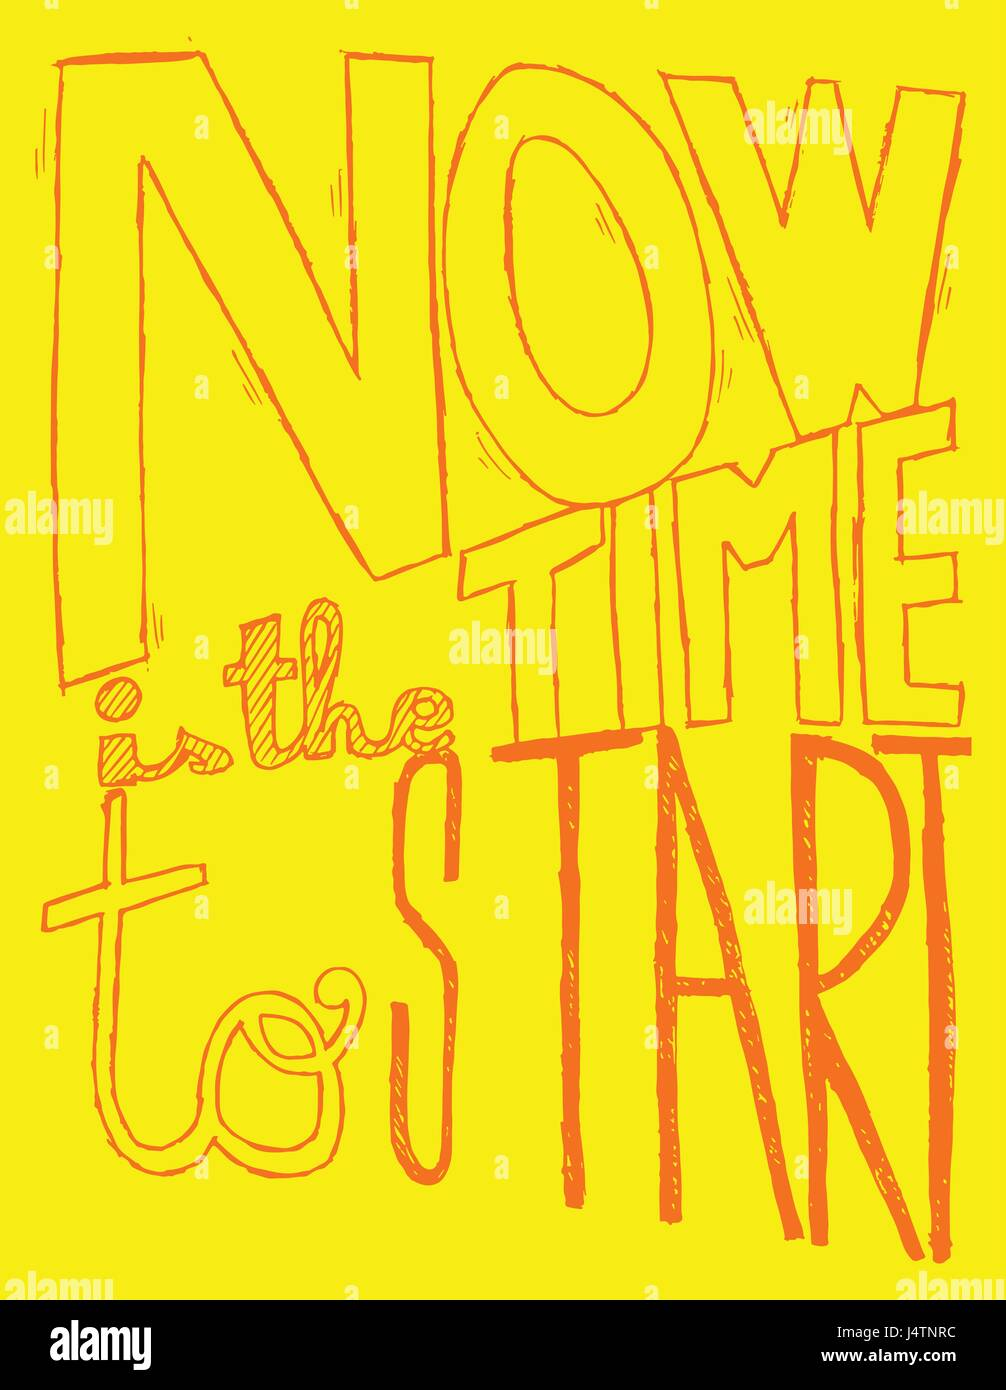 Inspirational quote - Now Is The Time To Start. For postcard and poster graphic design. - Stock Image